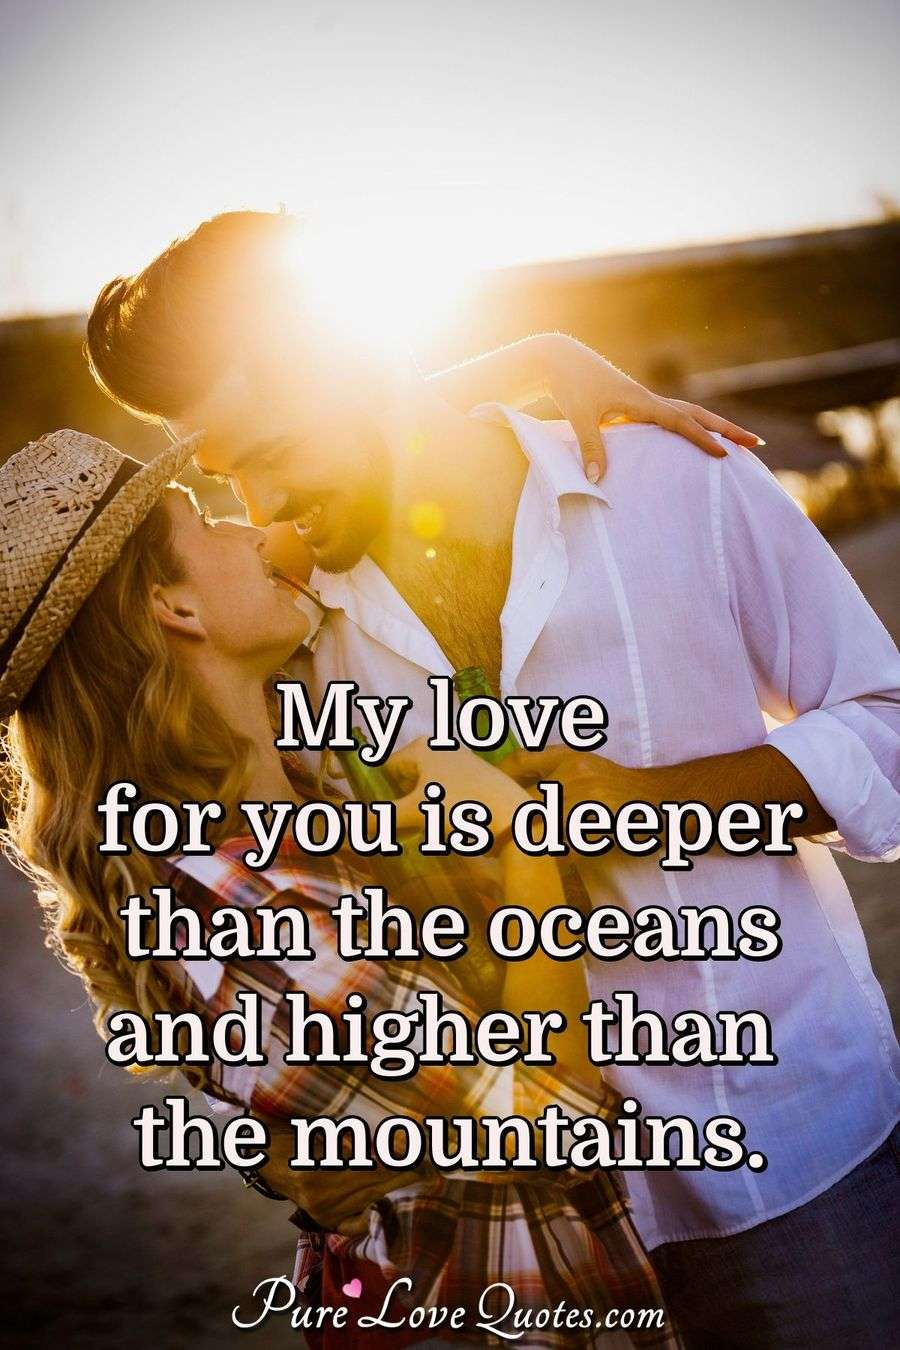 Cute Love Quotes Wallpapers For Him My Love For You Is Deeper Than The Oceans And Higher Than